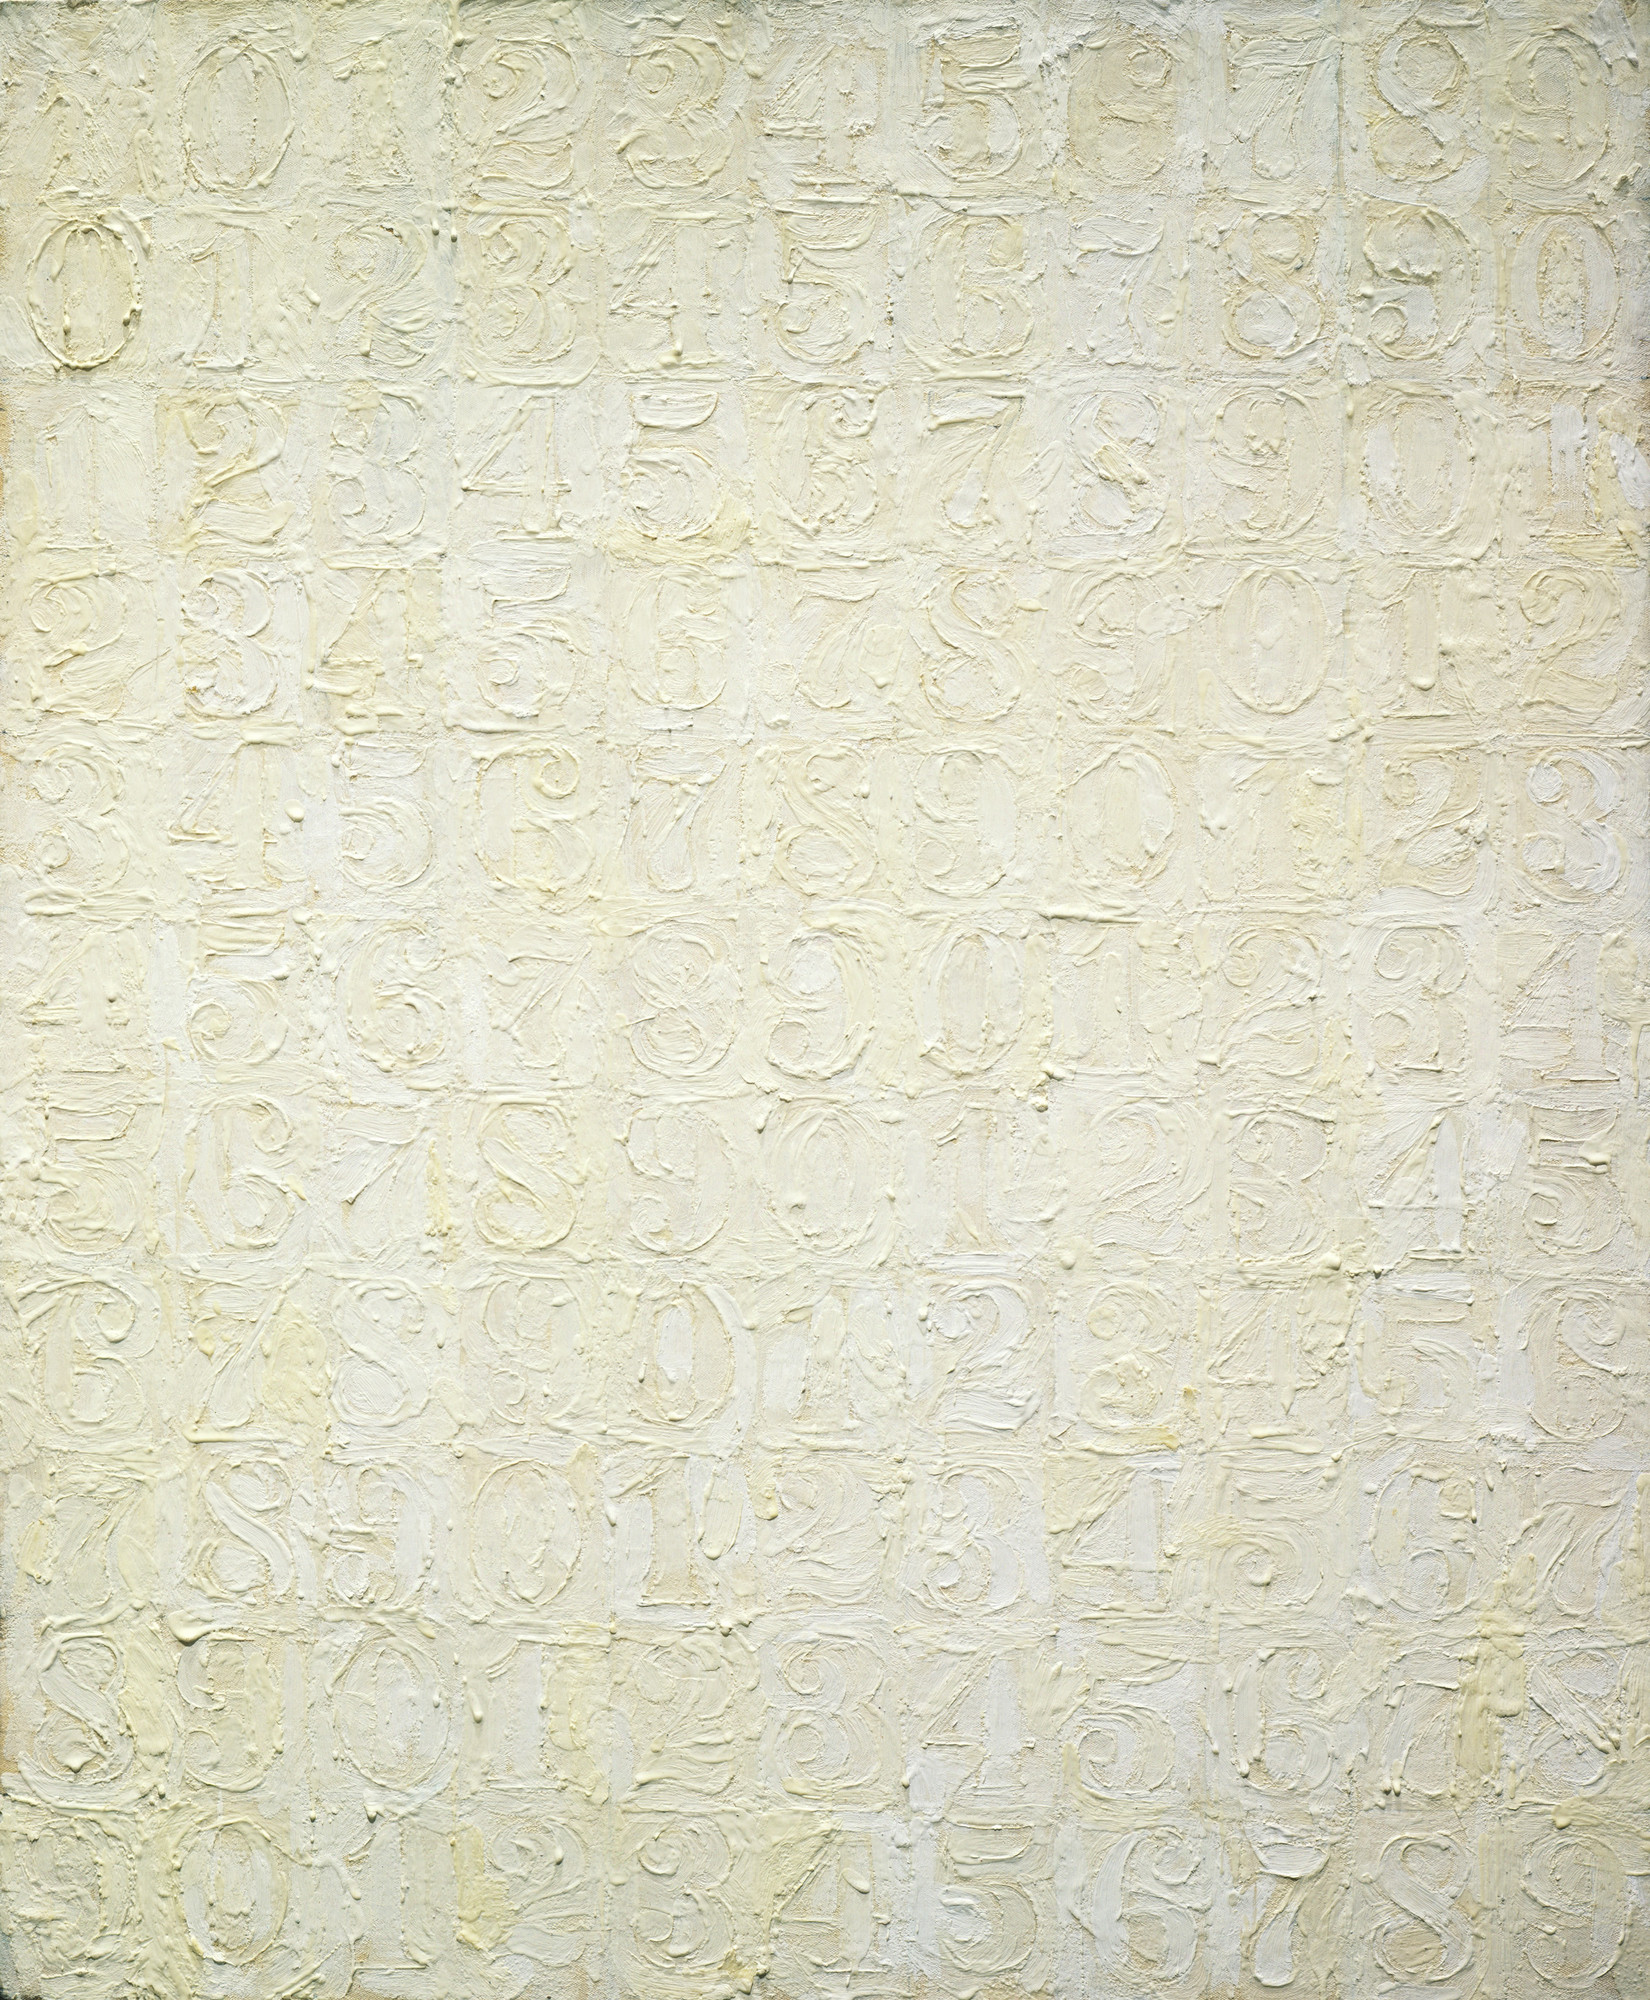 Jasper Johns. White Numbers. July 29, 1957